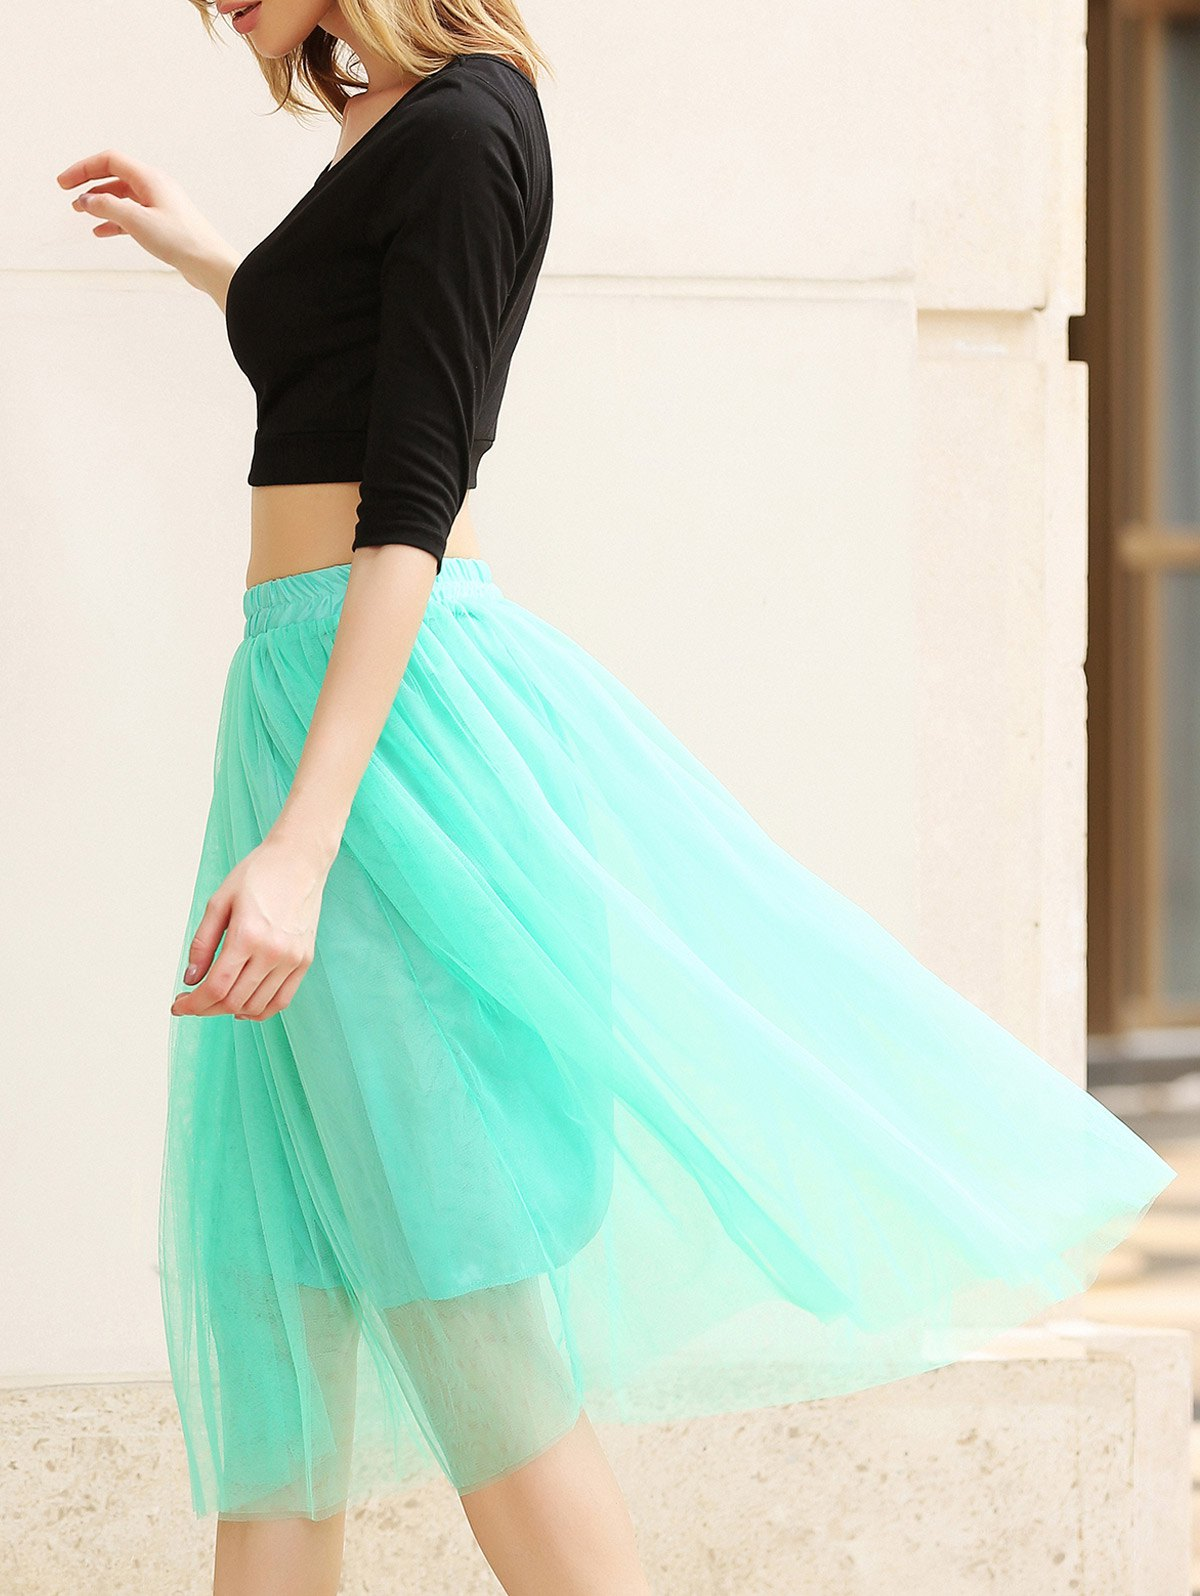 Refreshing Elastic Waist Puff Five layers Voile Multicolor Skirts For Women - GREEN FREE SIZE